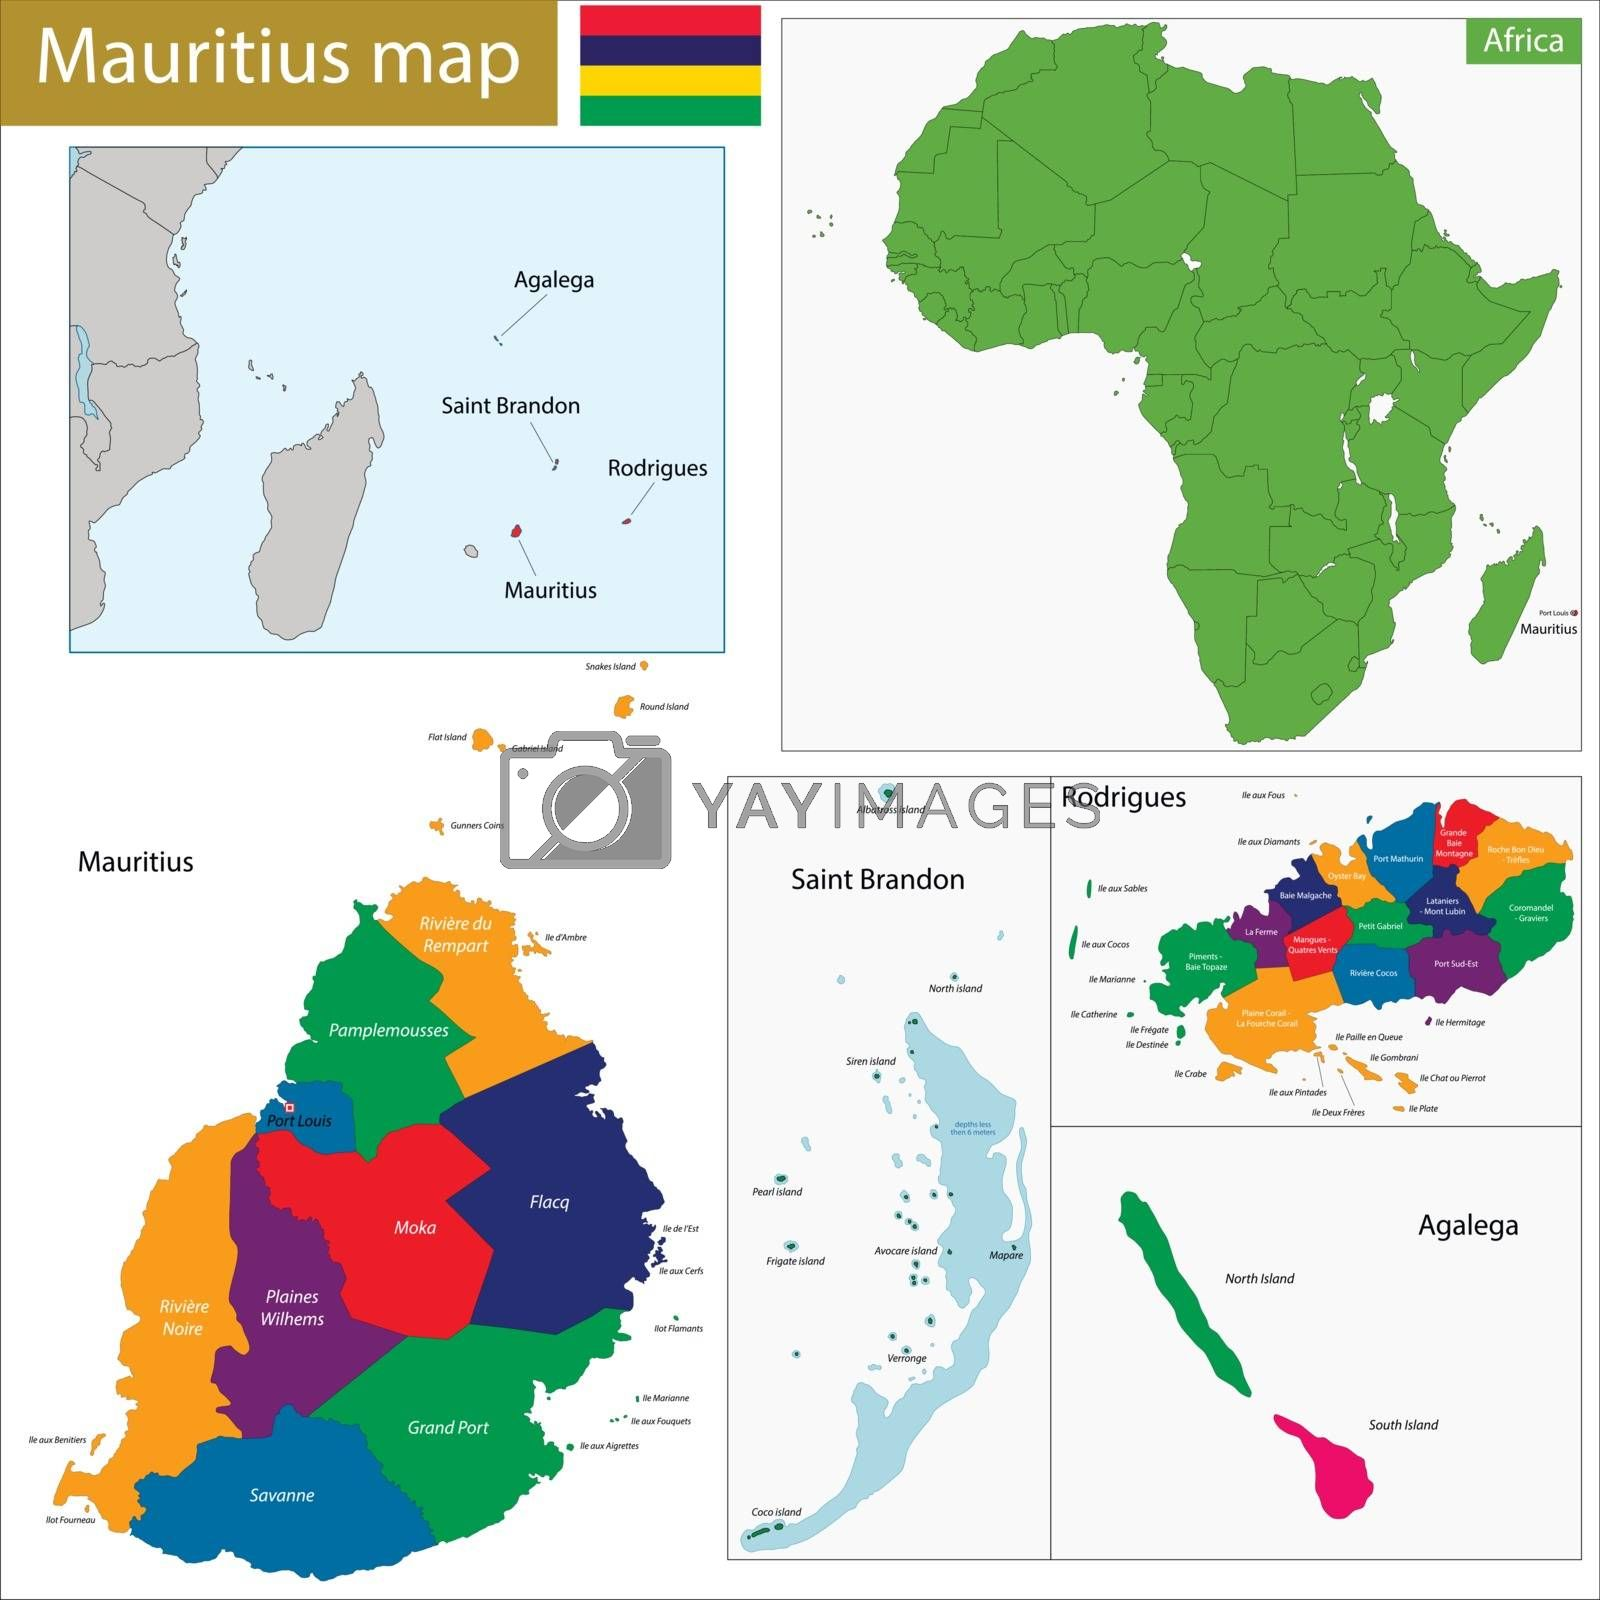 Mauritius map by Volina